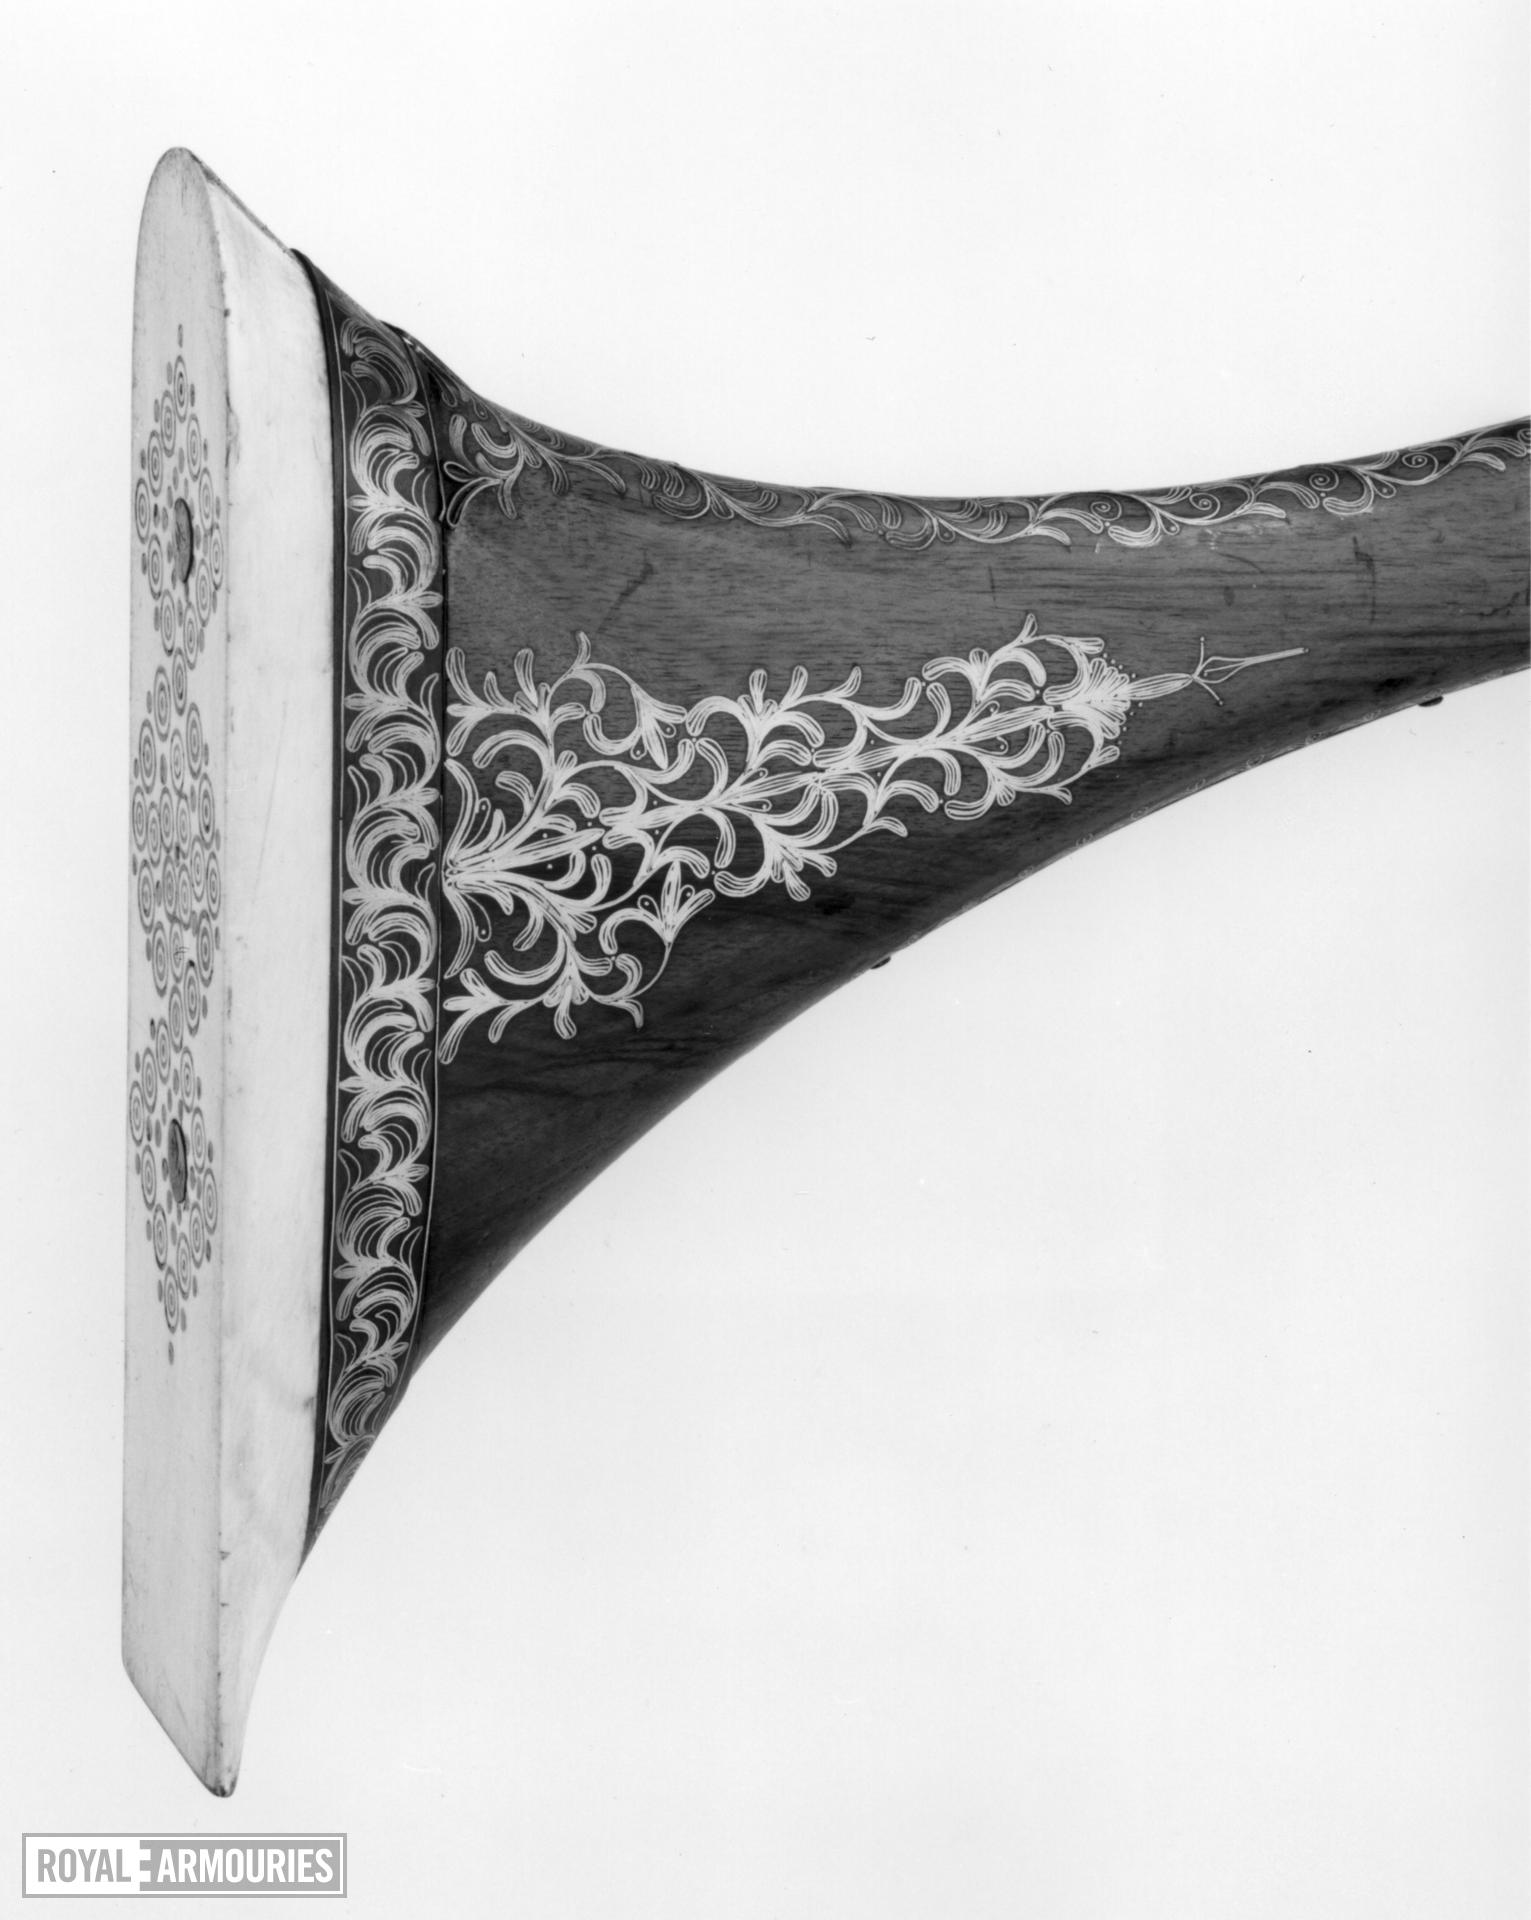 Snaphaunce sporting gun (mukhala) by tradition of the Viceroy of Tetuan